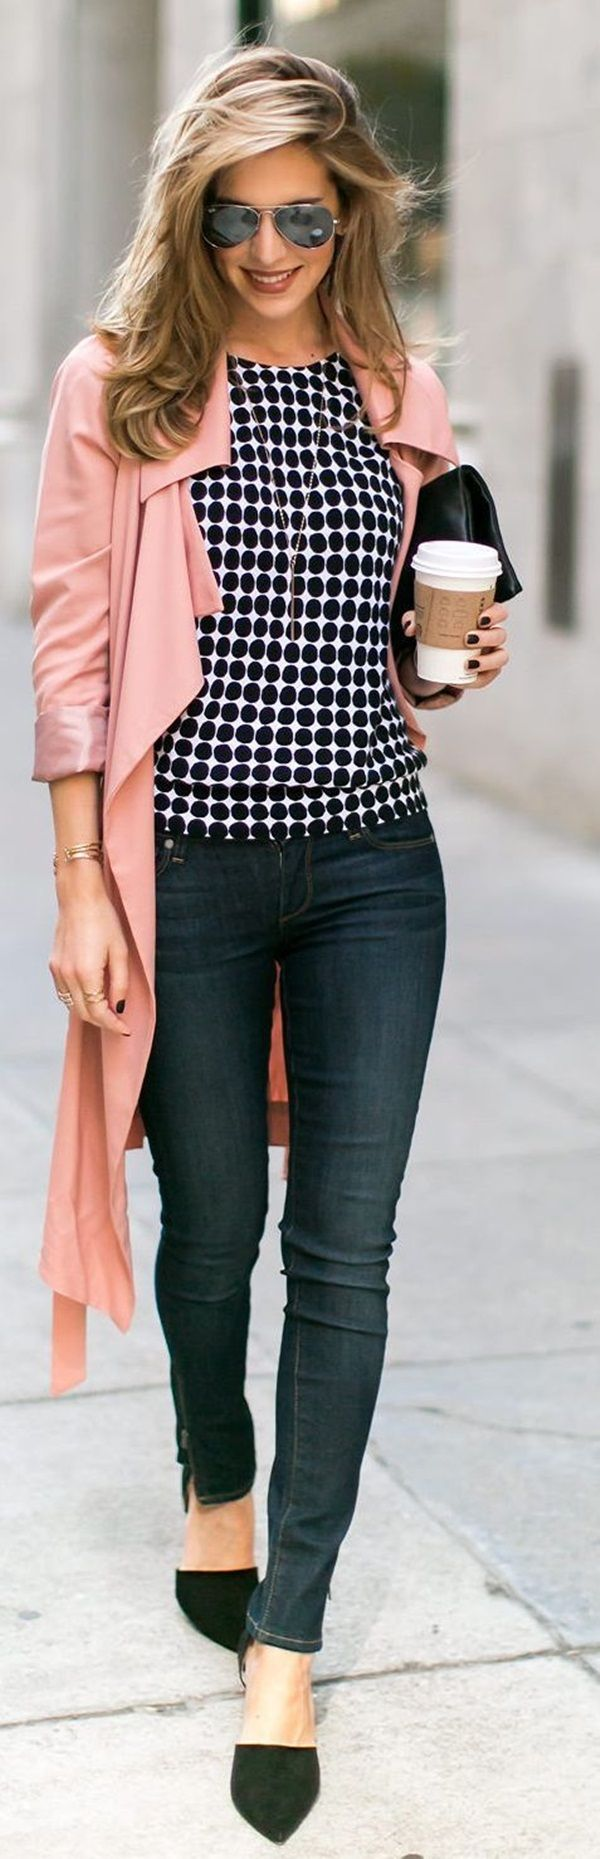 Winter Work Outfits for Women 15